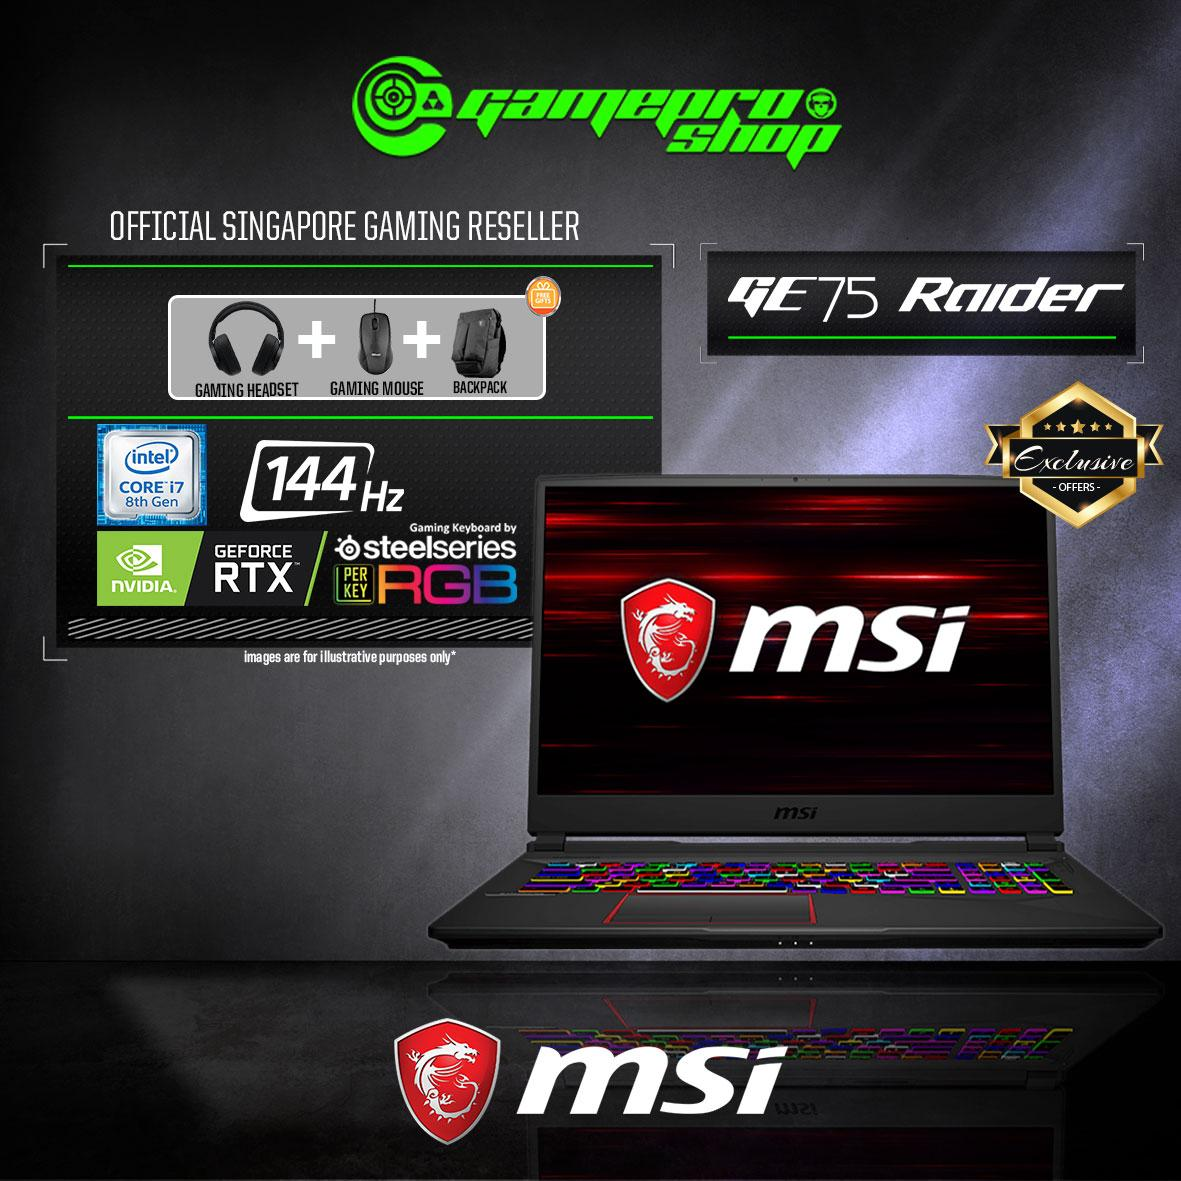 9th Gen MSI GE75 RTX2070 RAIDER 9SF - 649SG EXCLUSIVE (i7-9750H / 16GB / 1TB SSD /WIN 10) 17.3 with 144Hz GAMING LAPTOP *NDP PROMO*